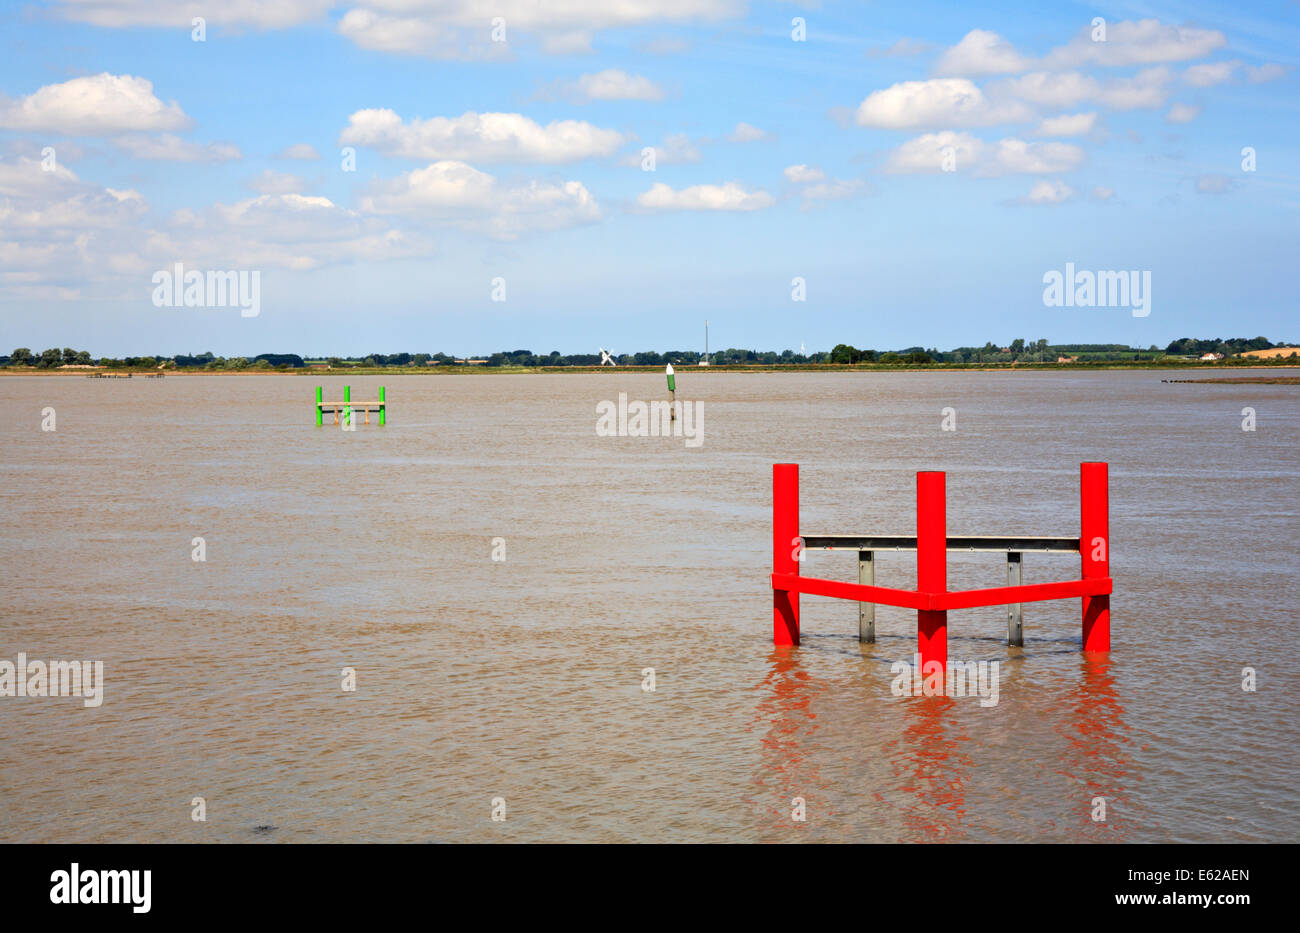 A view of Breydon Water with channel markers and mooring posts near Great Yarmouth, Norfolk, England, United Kingdom. - Stock Image